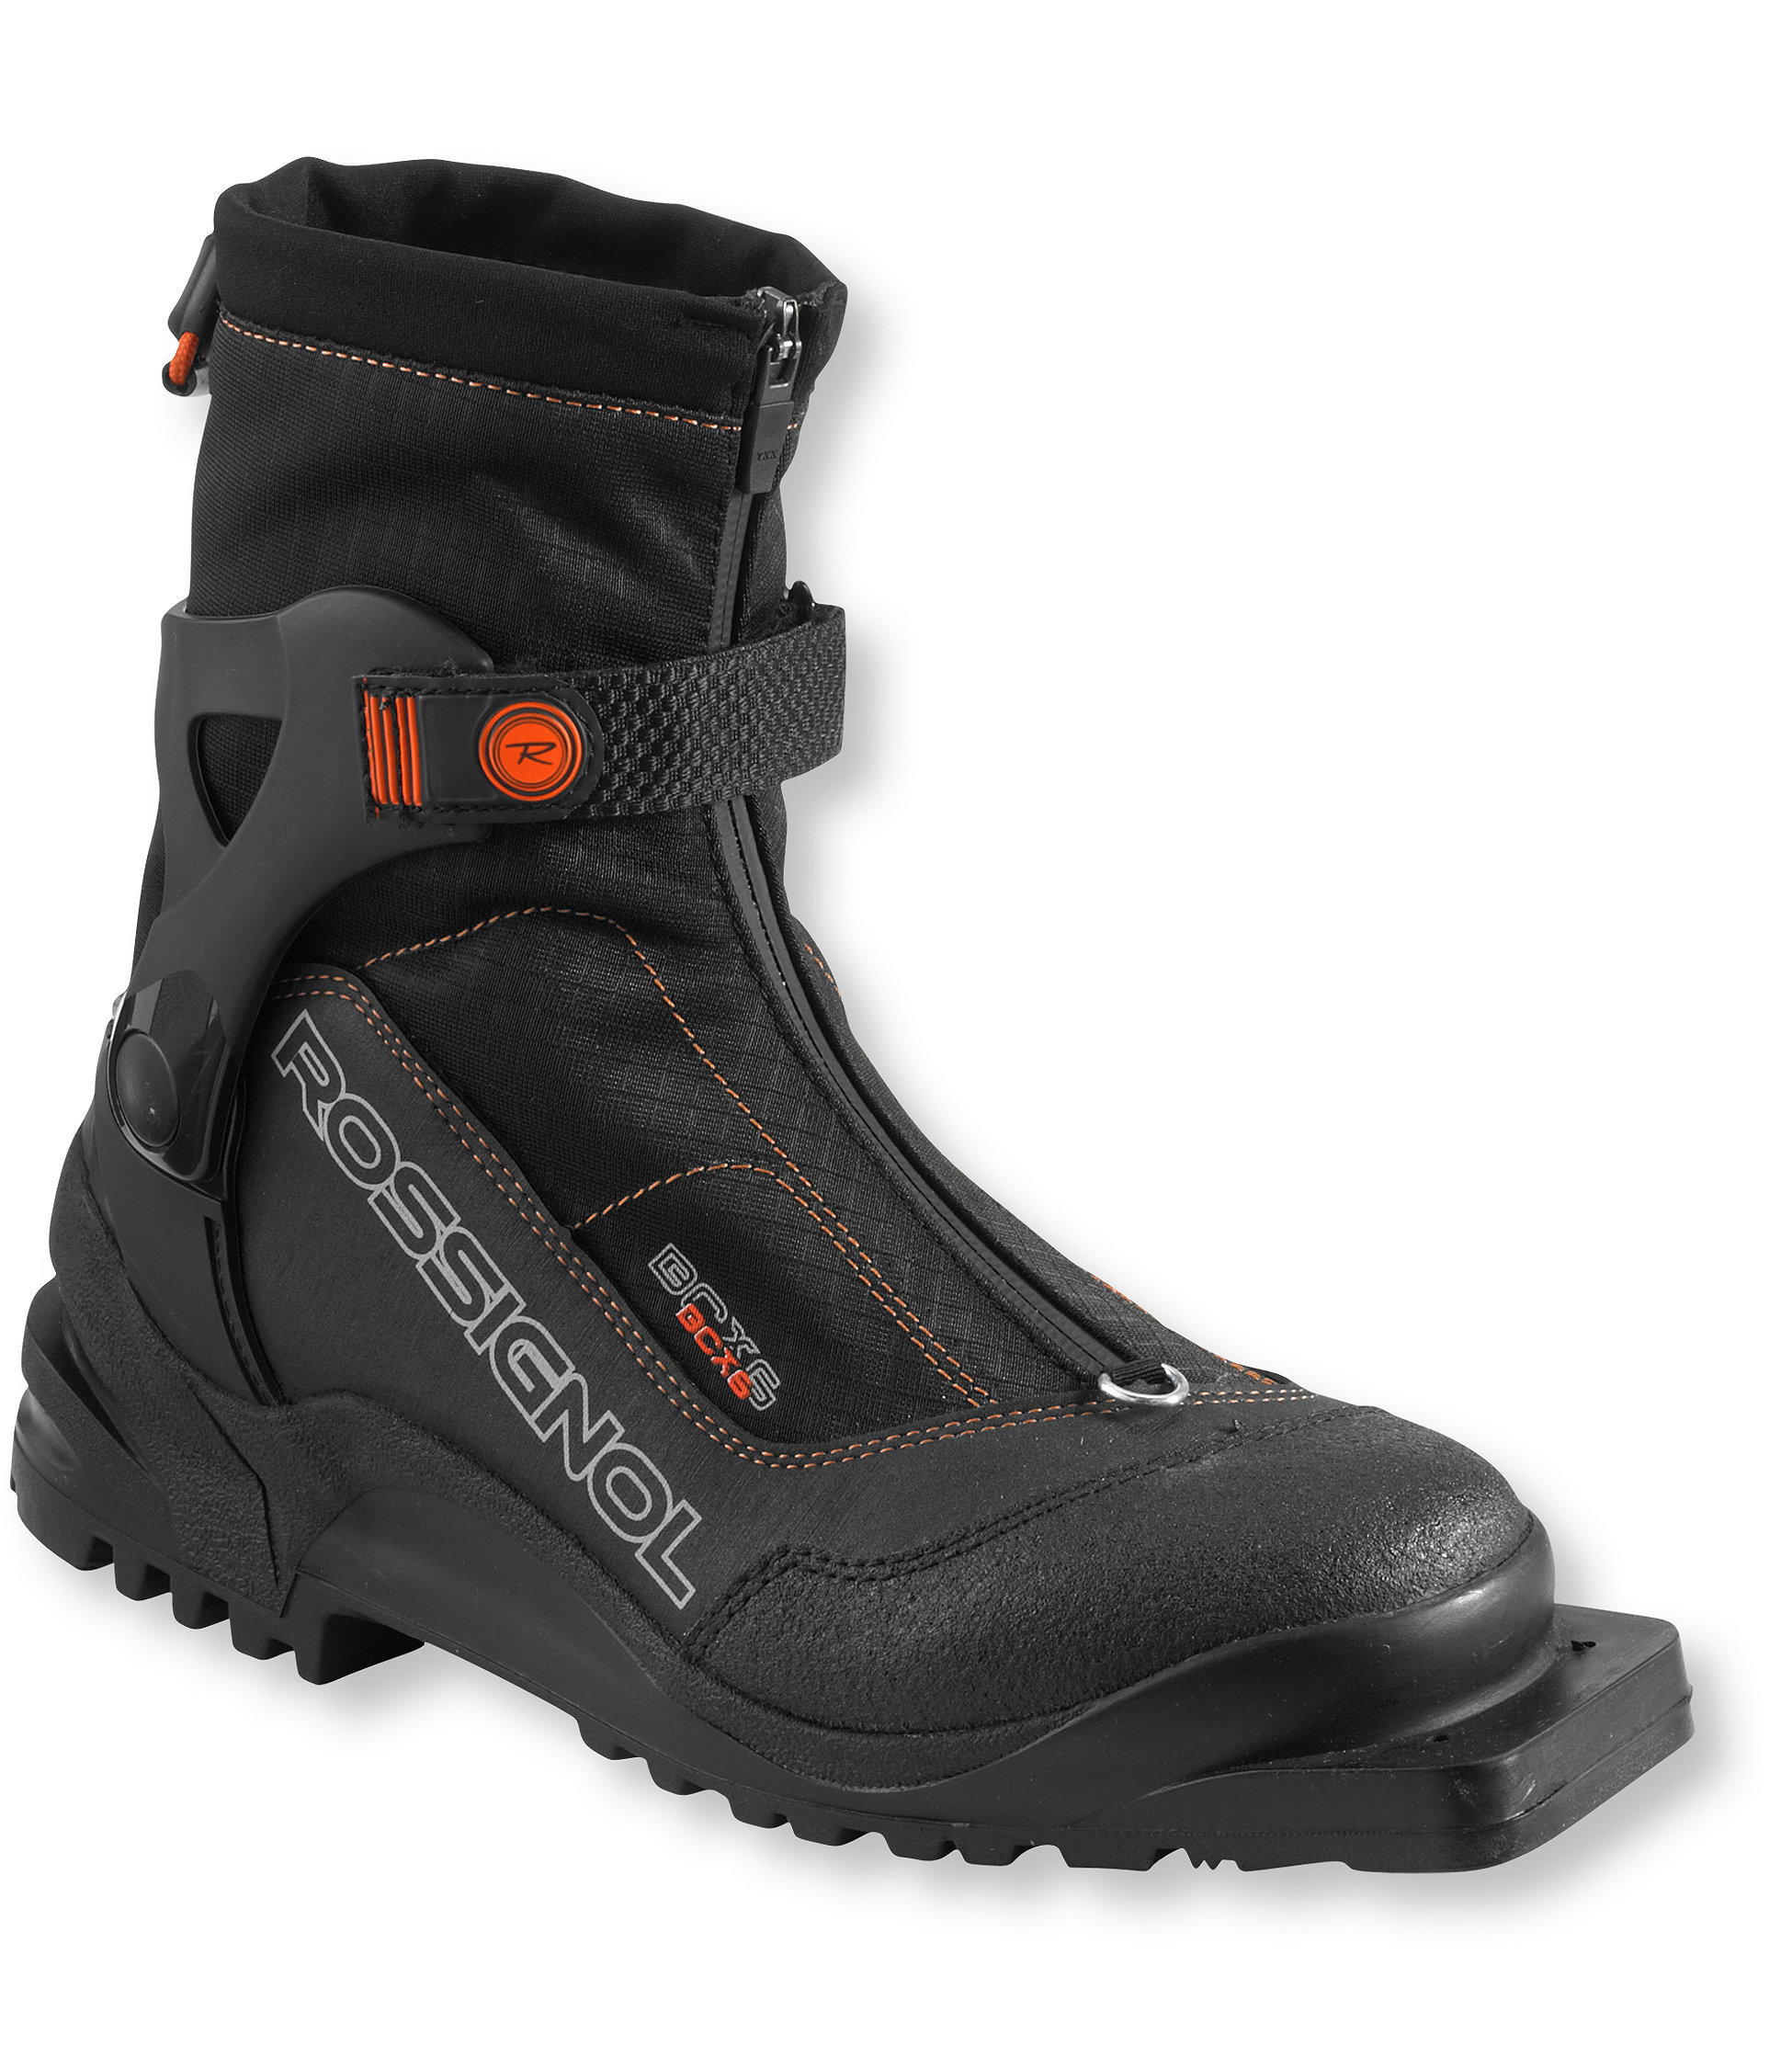 photo: Rossignol BC X6 nordic touring boot